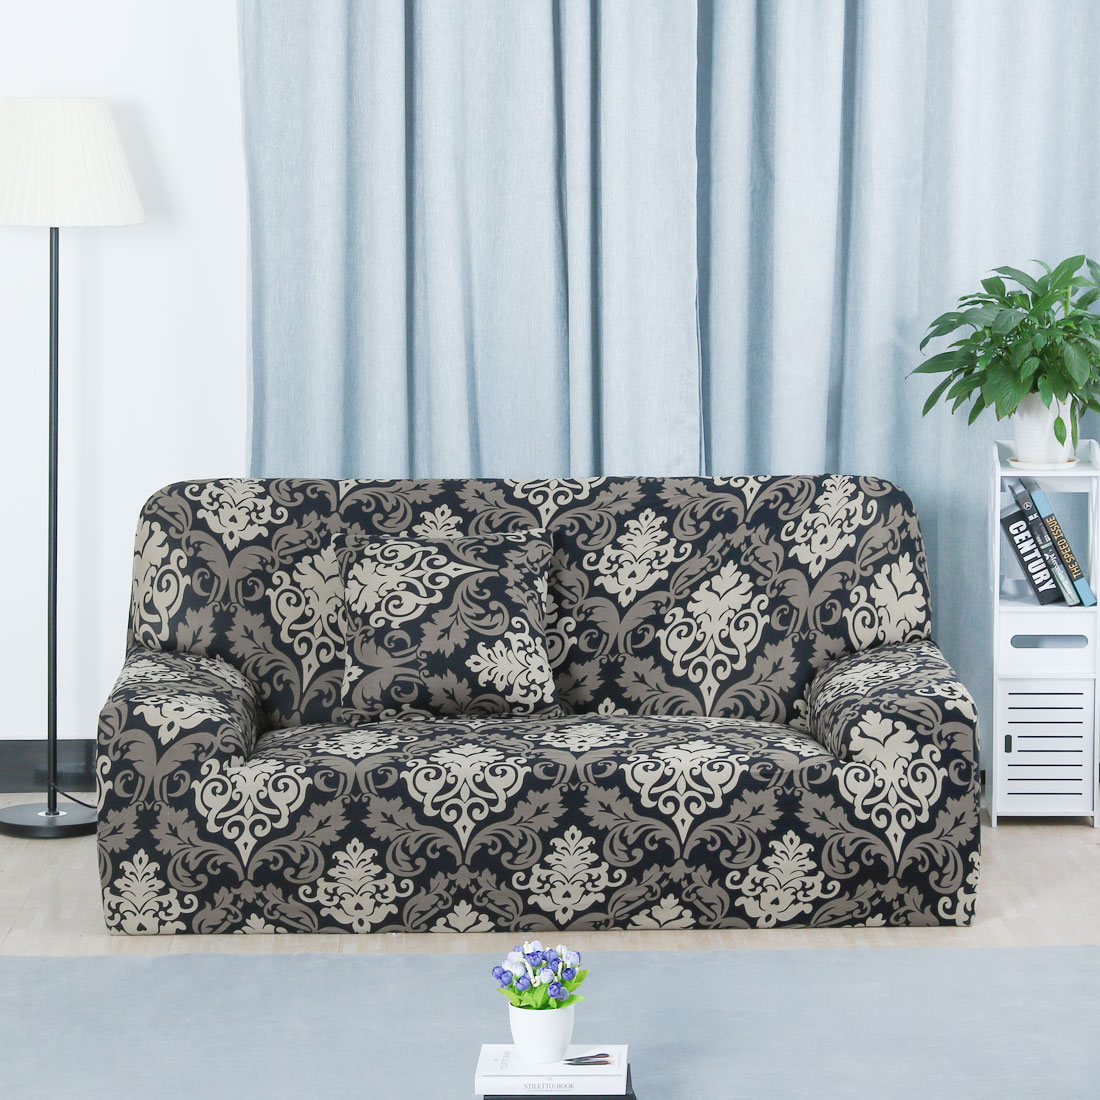 Stretch Chair Sofa Covers 1 2 3 4 Seater Style 14 Sofa-3seater - image 4 of 8